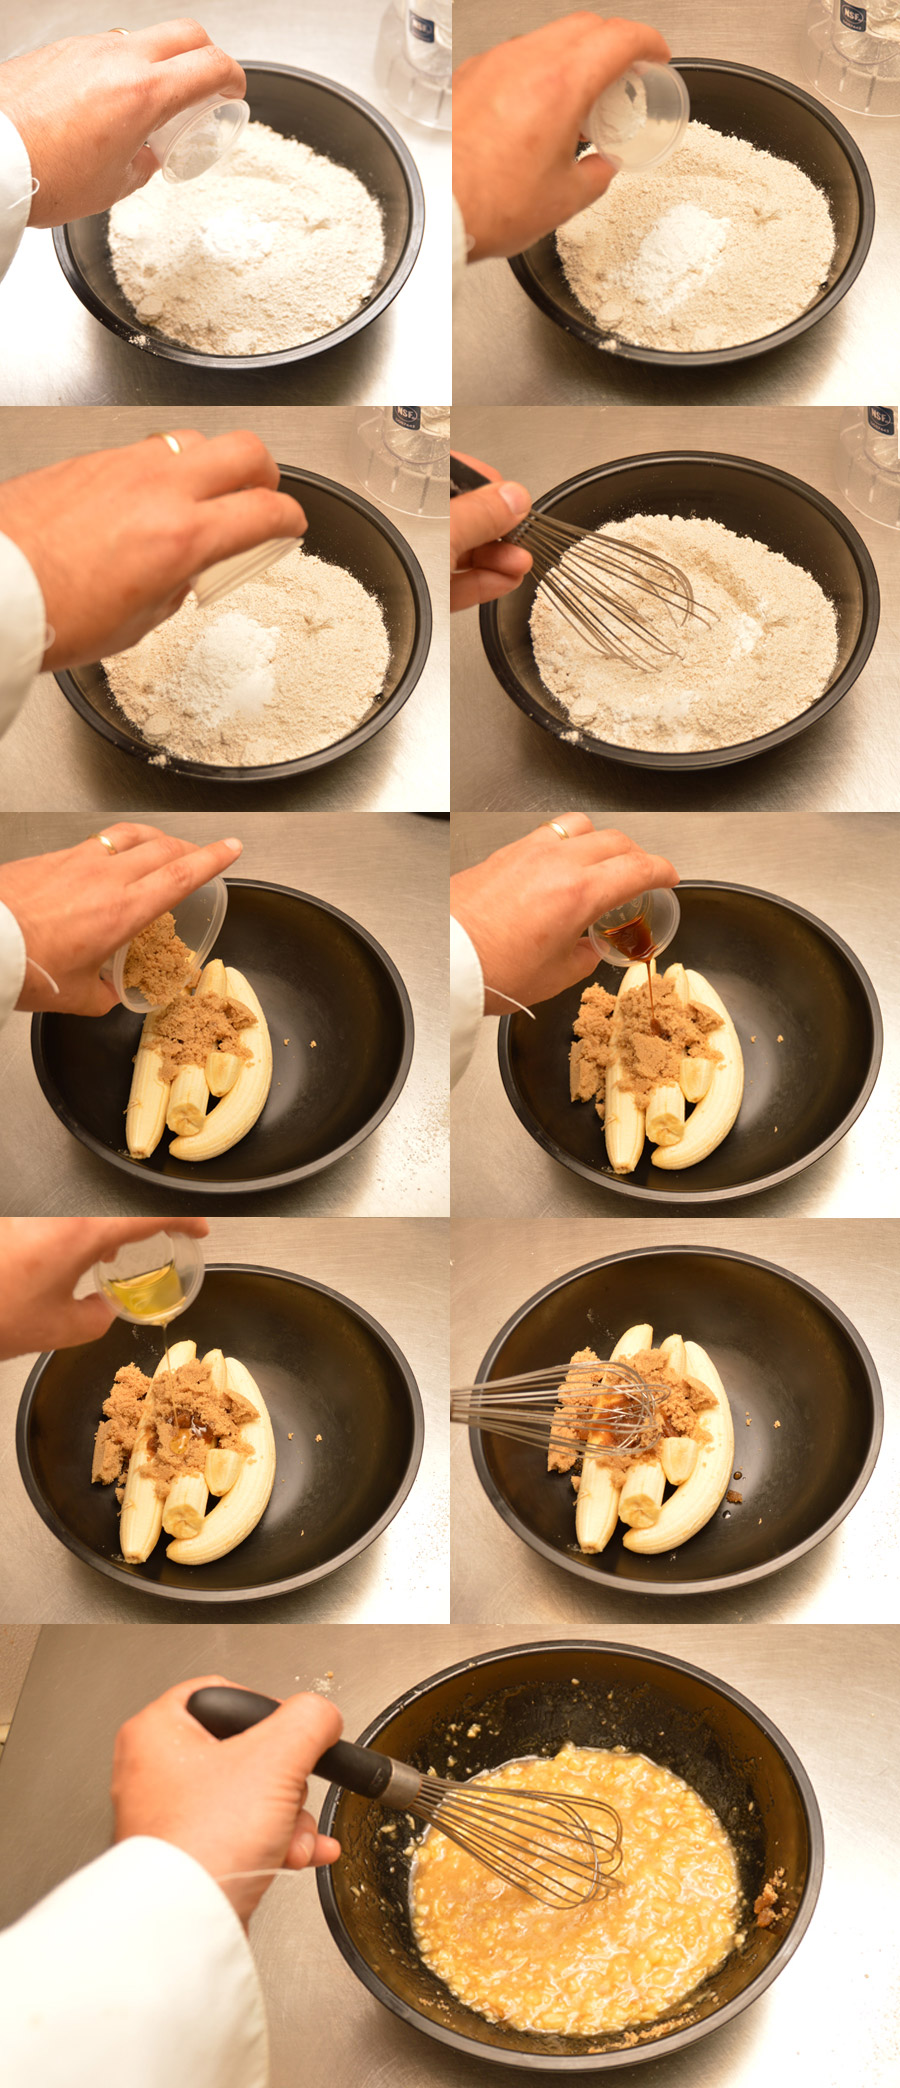 Combining the sugar, bananas, and oil